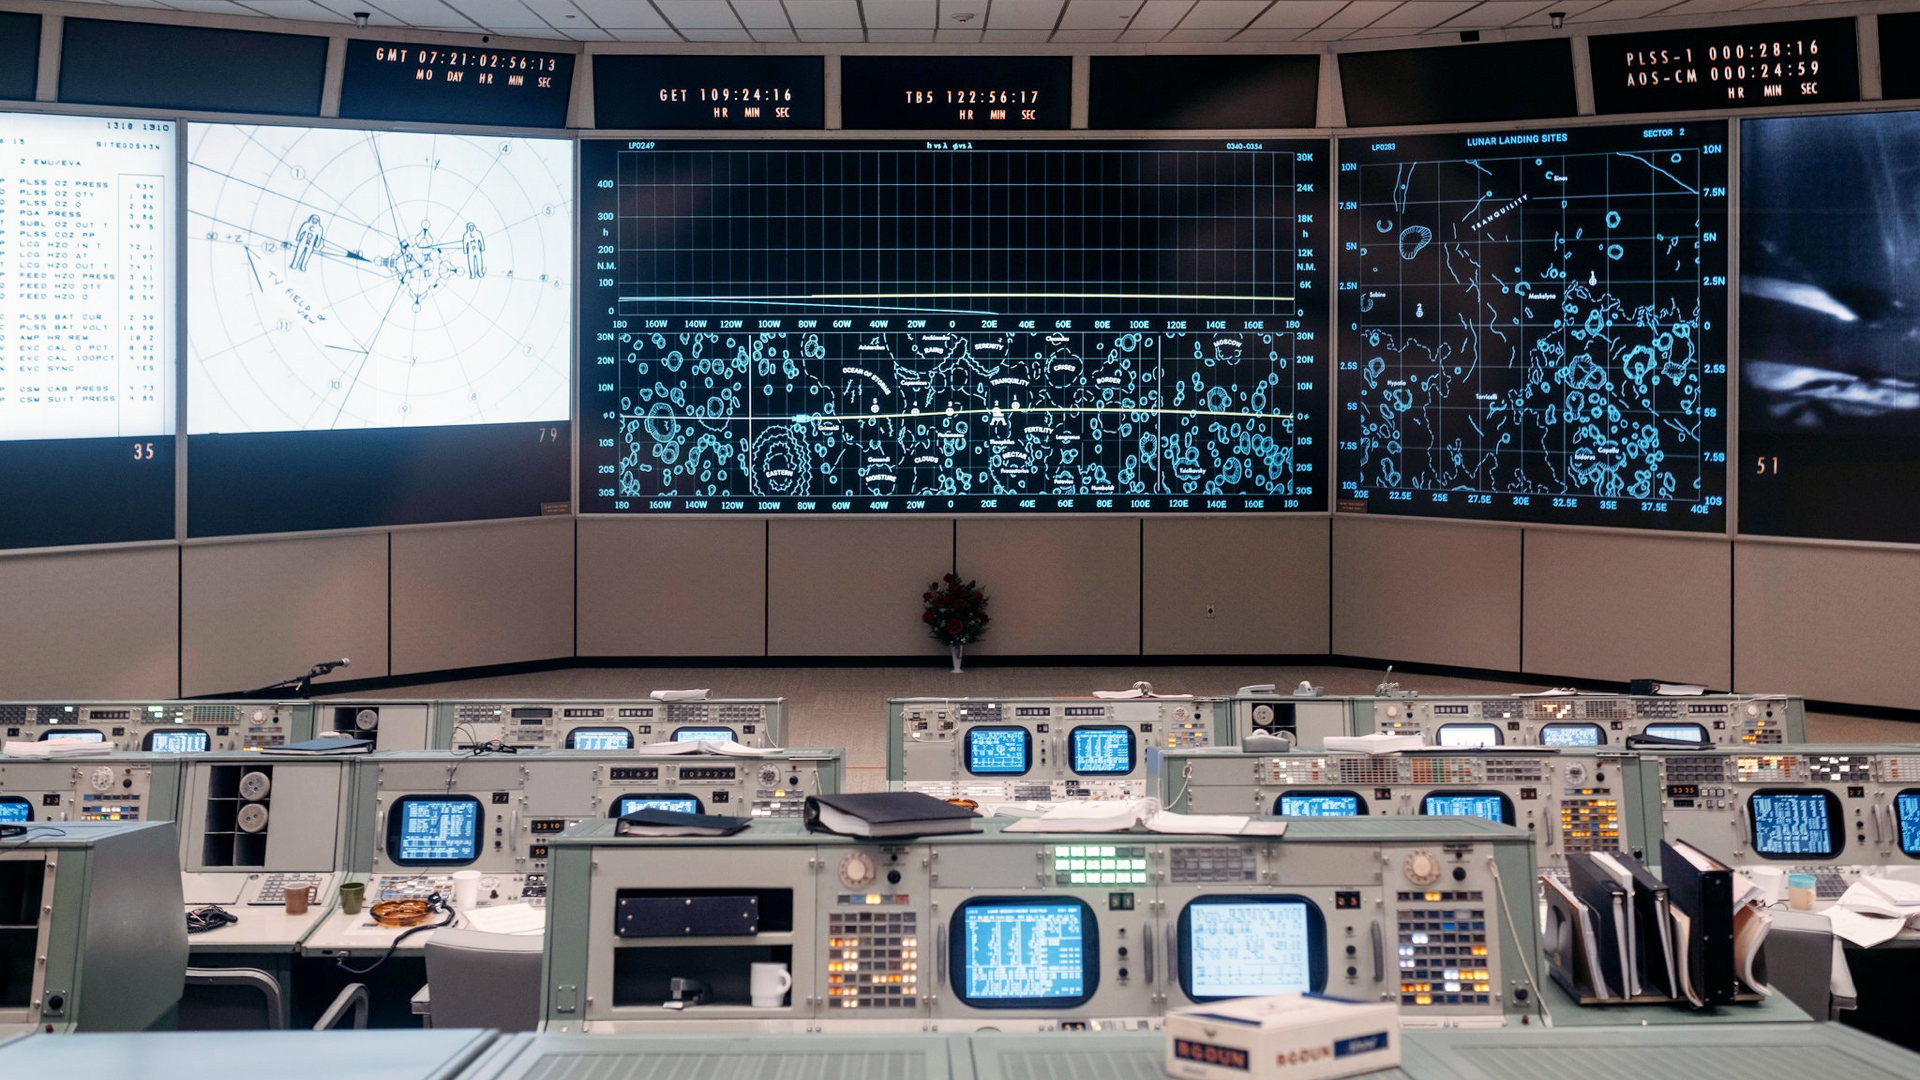 Apollo Mission Operations Control Room. Virtual background to use on Zoom, Microsoft Teams, Skype, Google Meet, WebEx or any other compatible app.